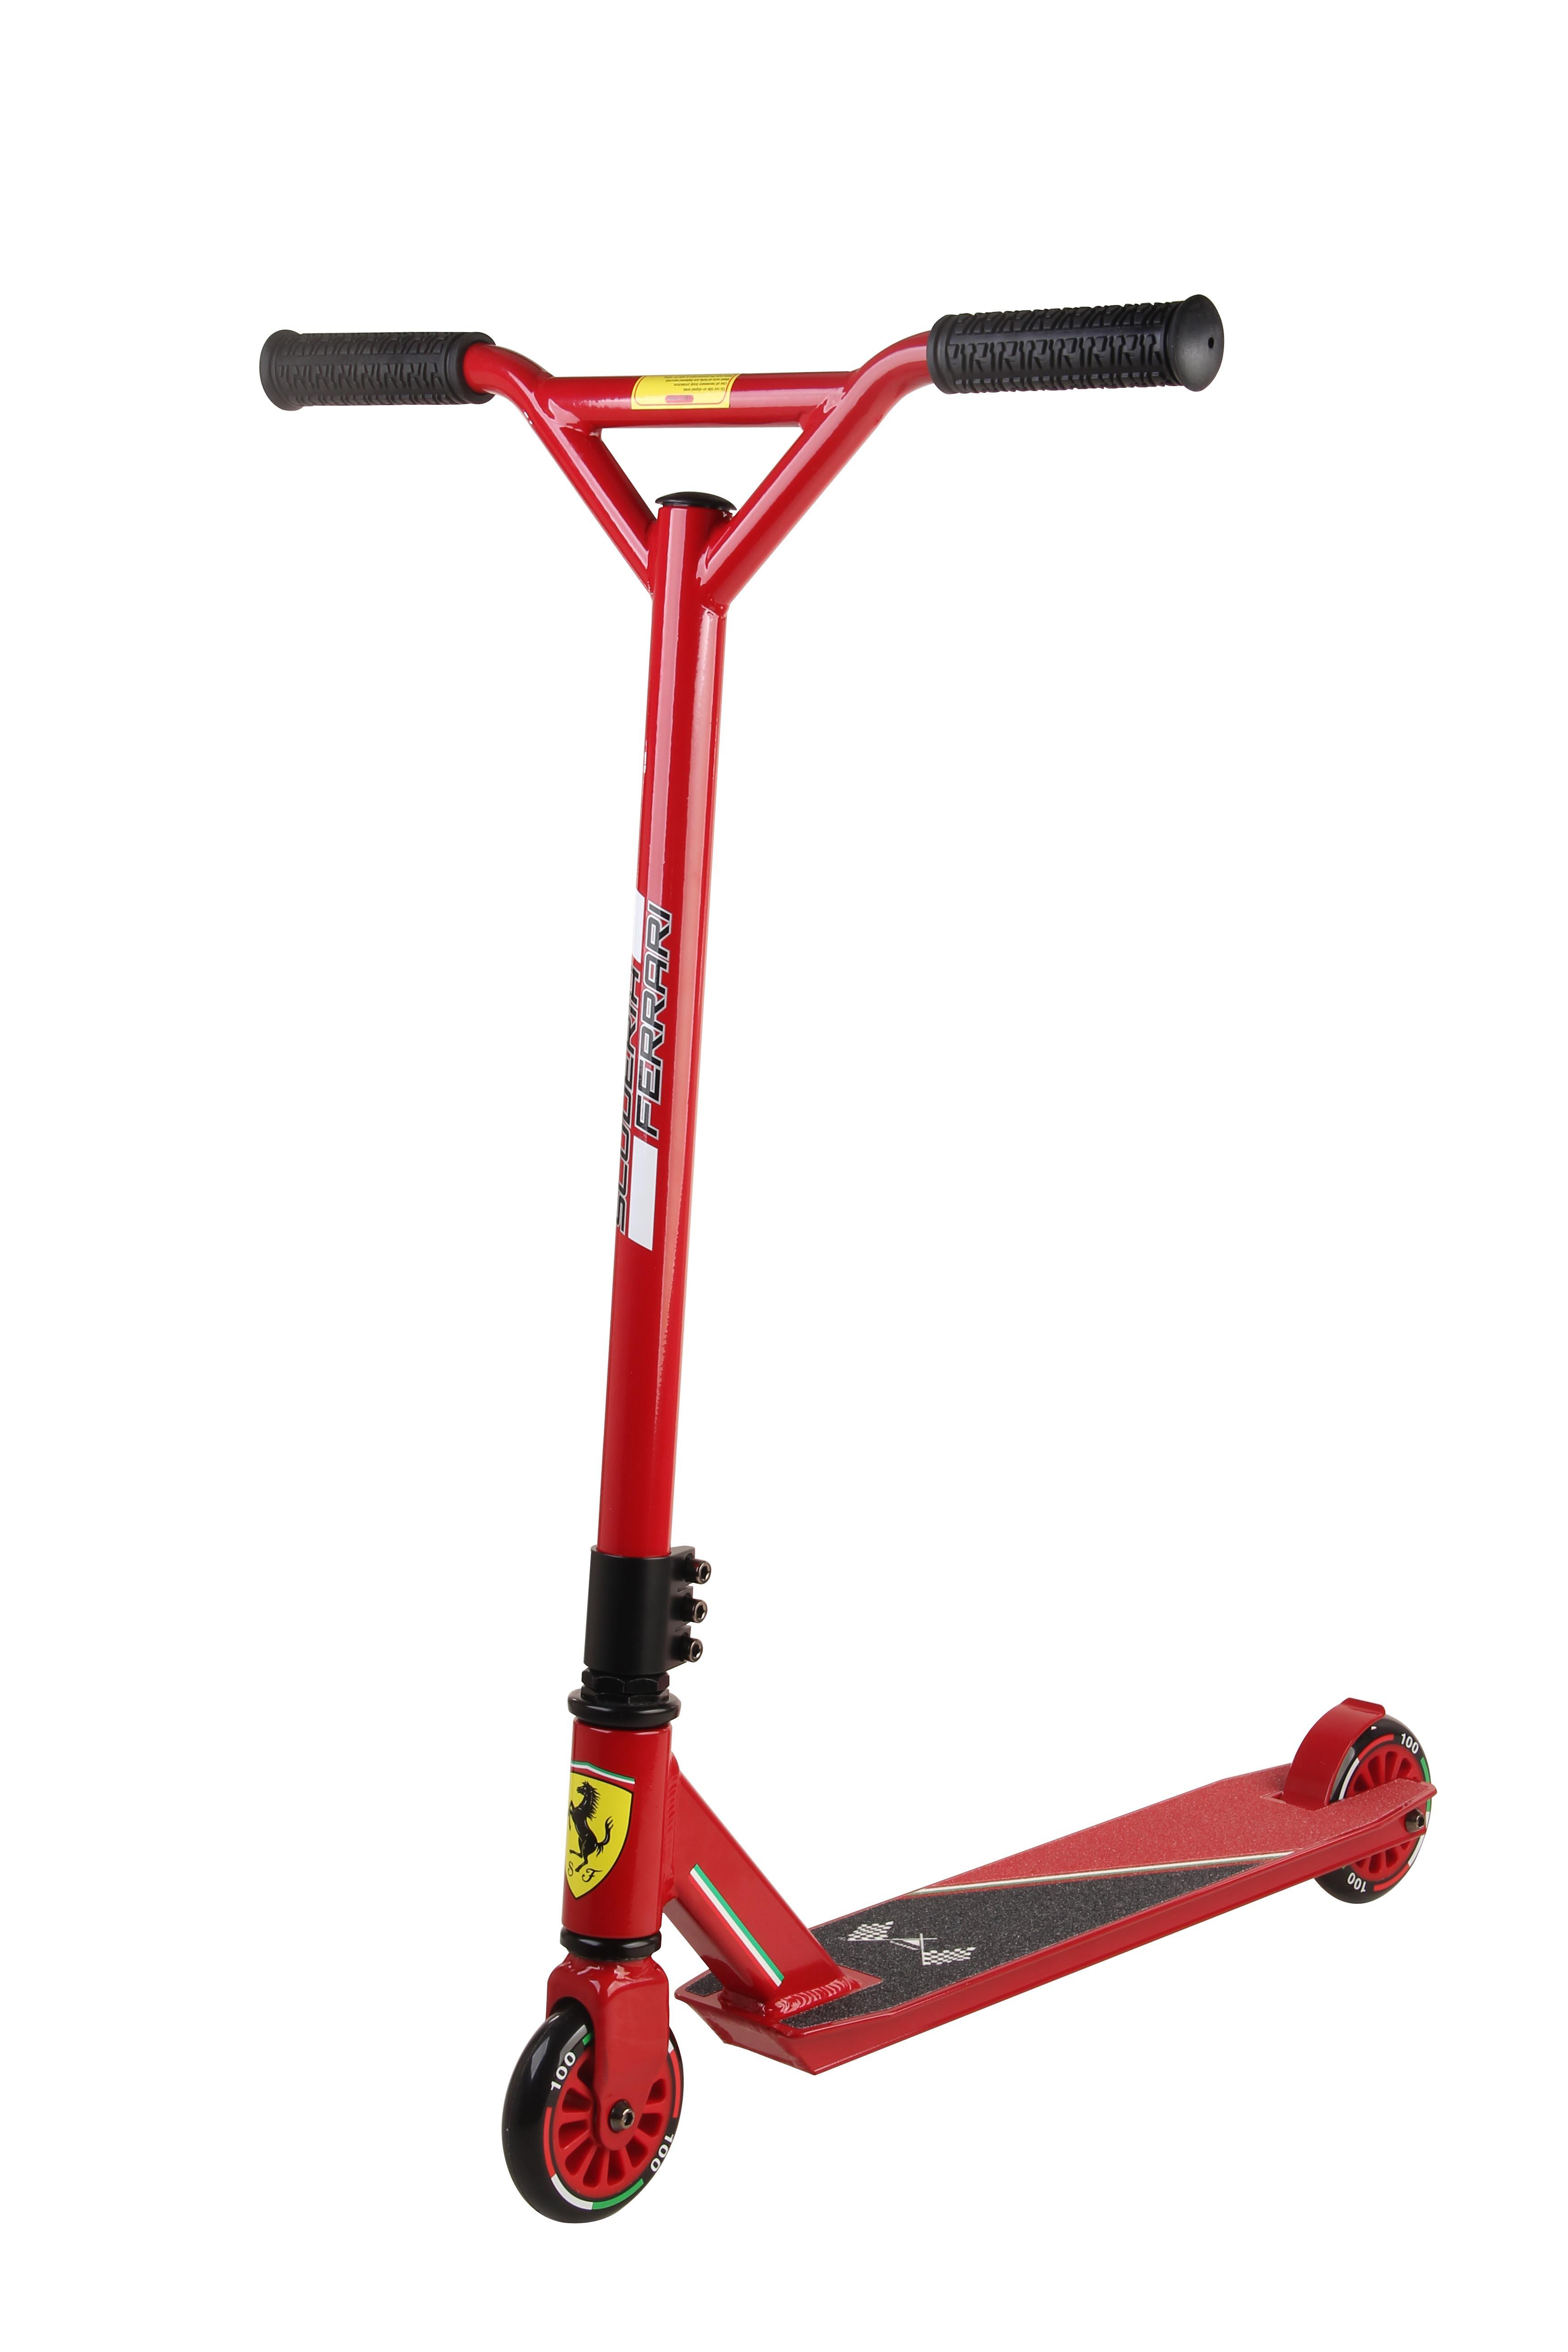 Amazon.com: Ferrari 2 ruedas Scooter: Sports & Outdoors